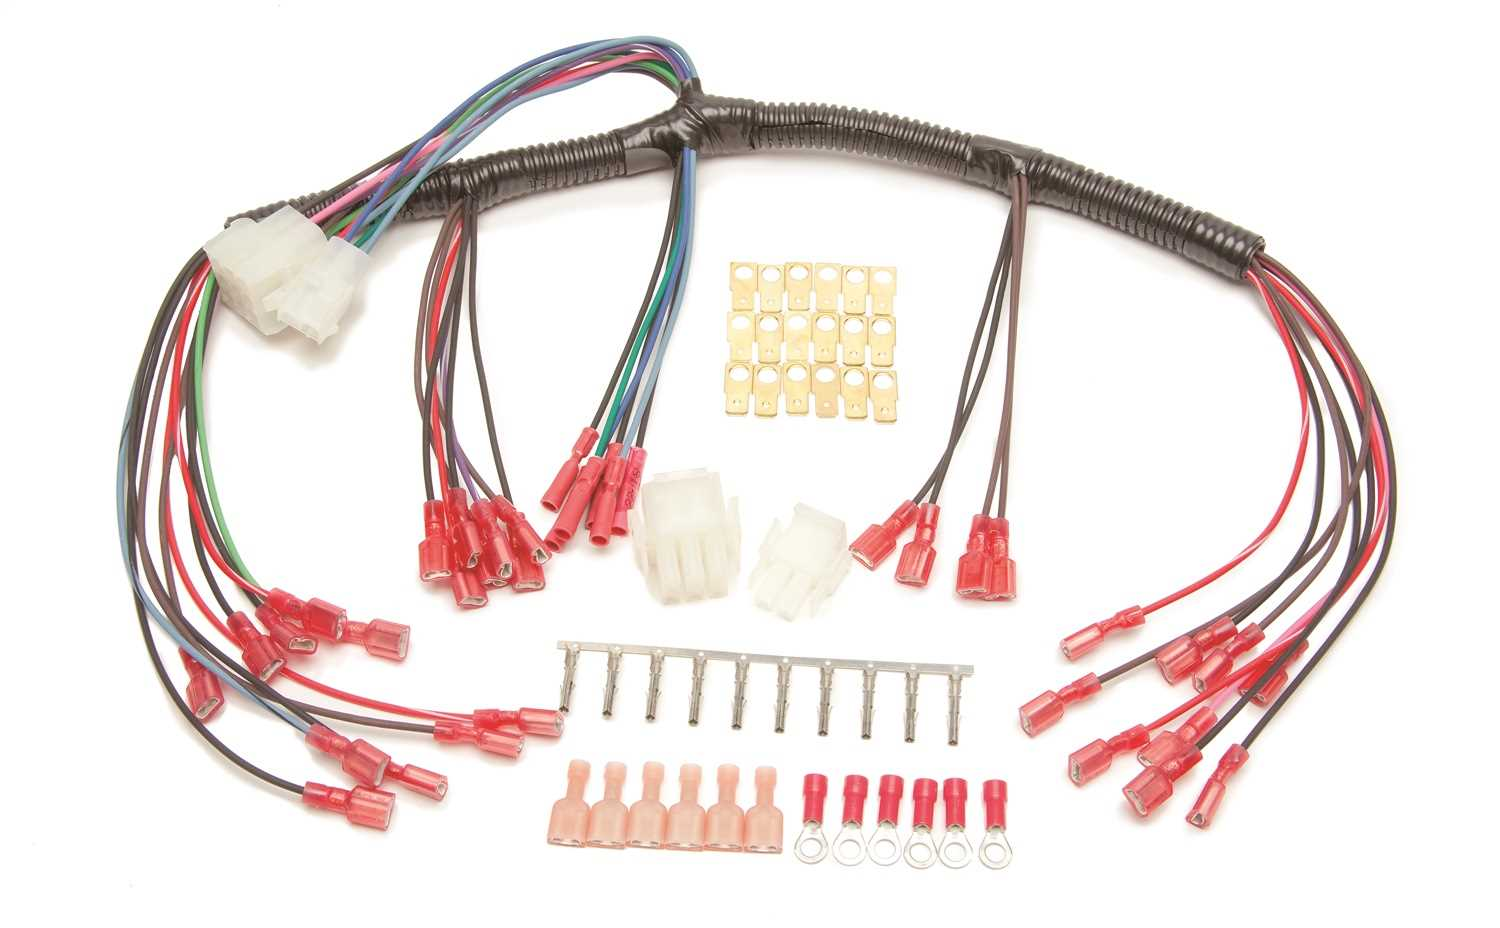 30301 Painless Wiring Gauge Wiring Harness 30301 on 1972 chevy truck harness, radio harness, painless fuse box, front lead dog harness, indestructible dog harness, chevy tbi harness, rover series 3 diesel harness, 5.3 vortec swap harness, bully dog harness, 5 point harness, painless engine harness, horse driving harness, racing seat harness, horse team harness, dodge ram injector harness, duraspark harness, electrical harness, ford 5.0 fuel injection harness, fuel injector harness, car harness,